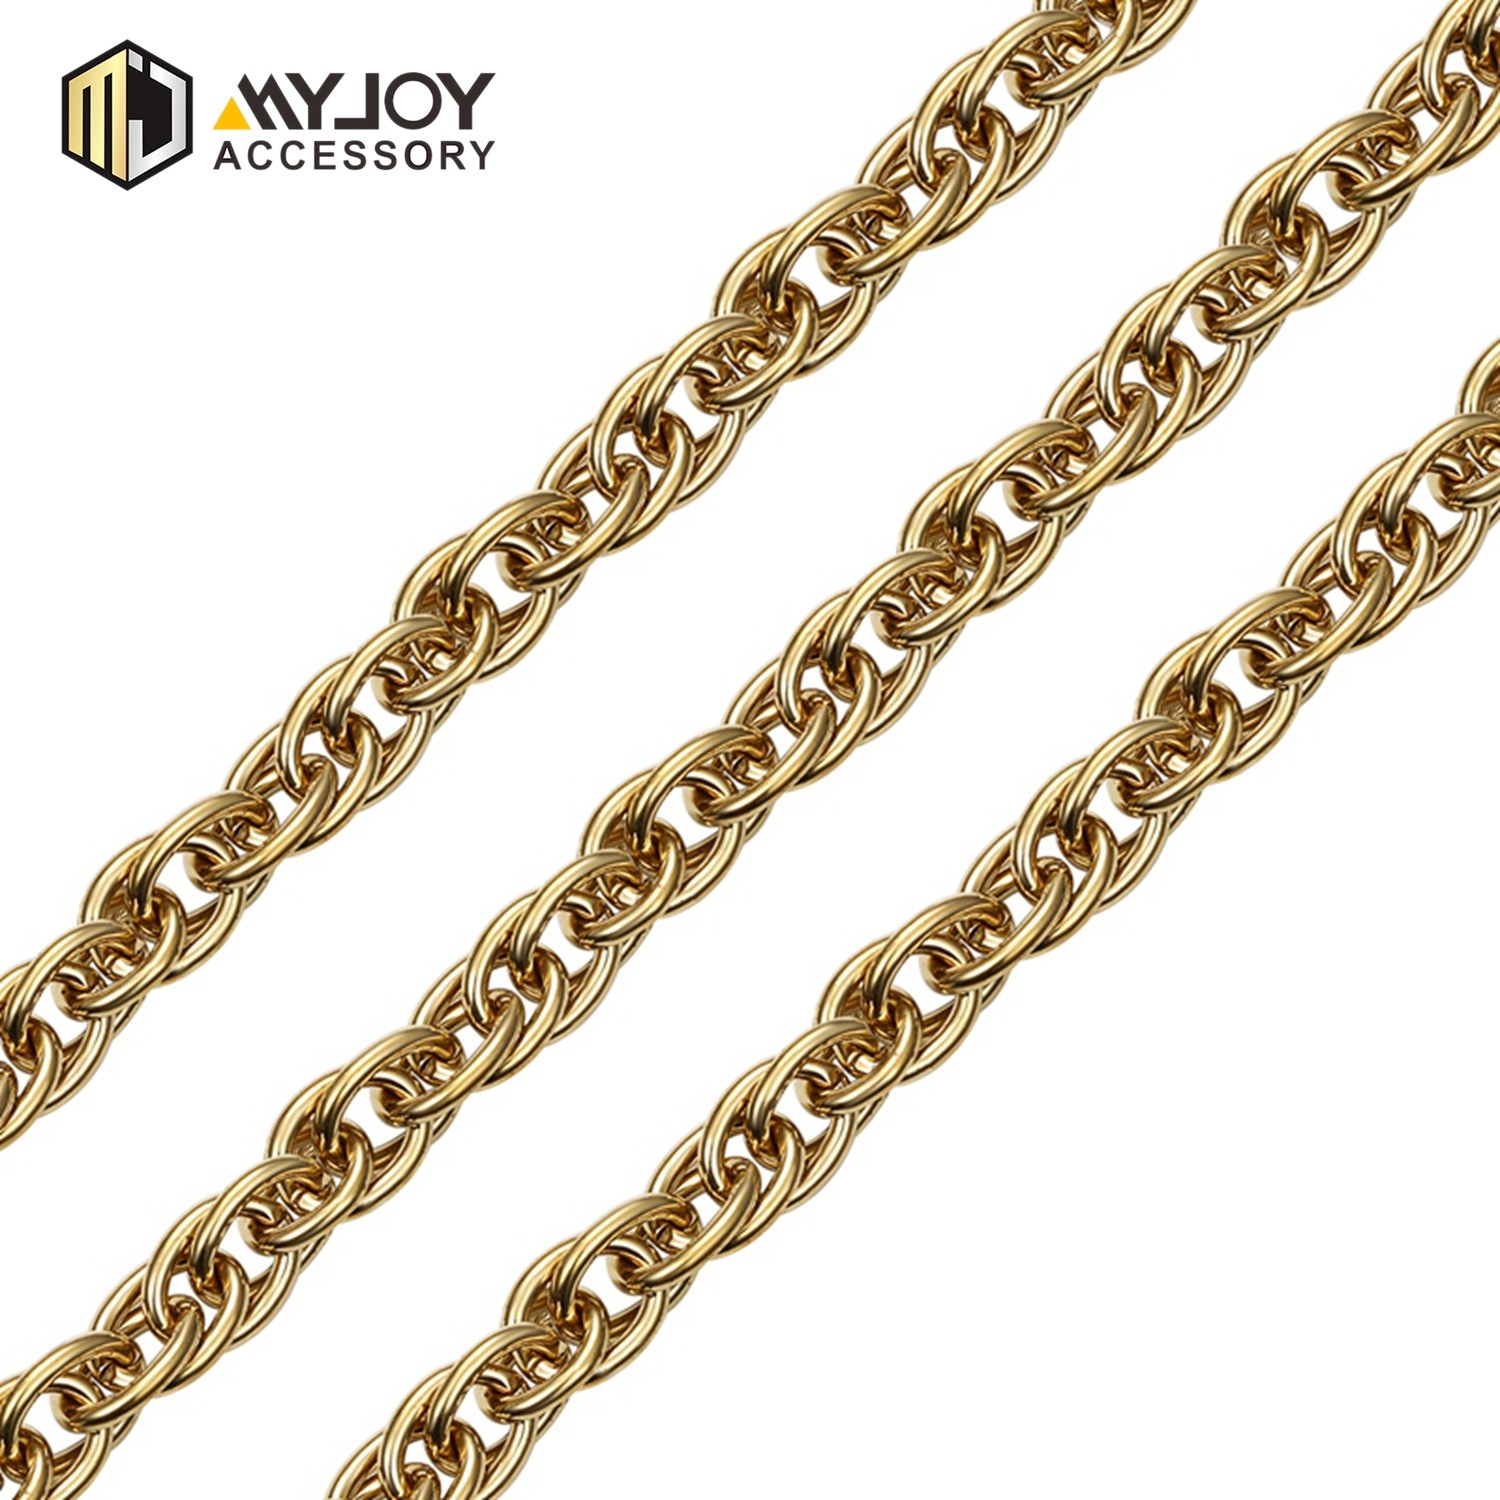 MYJOY vogue handbag strap chain for sale for bags-3